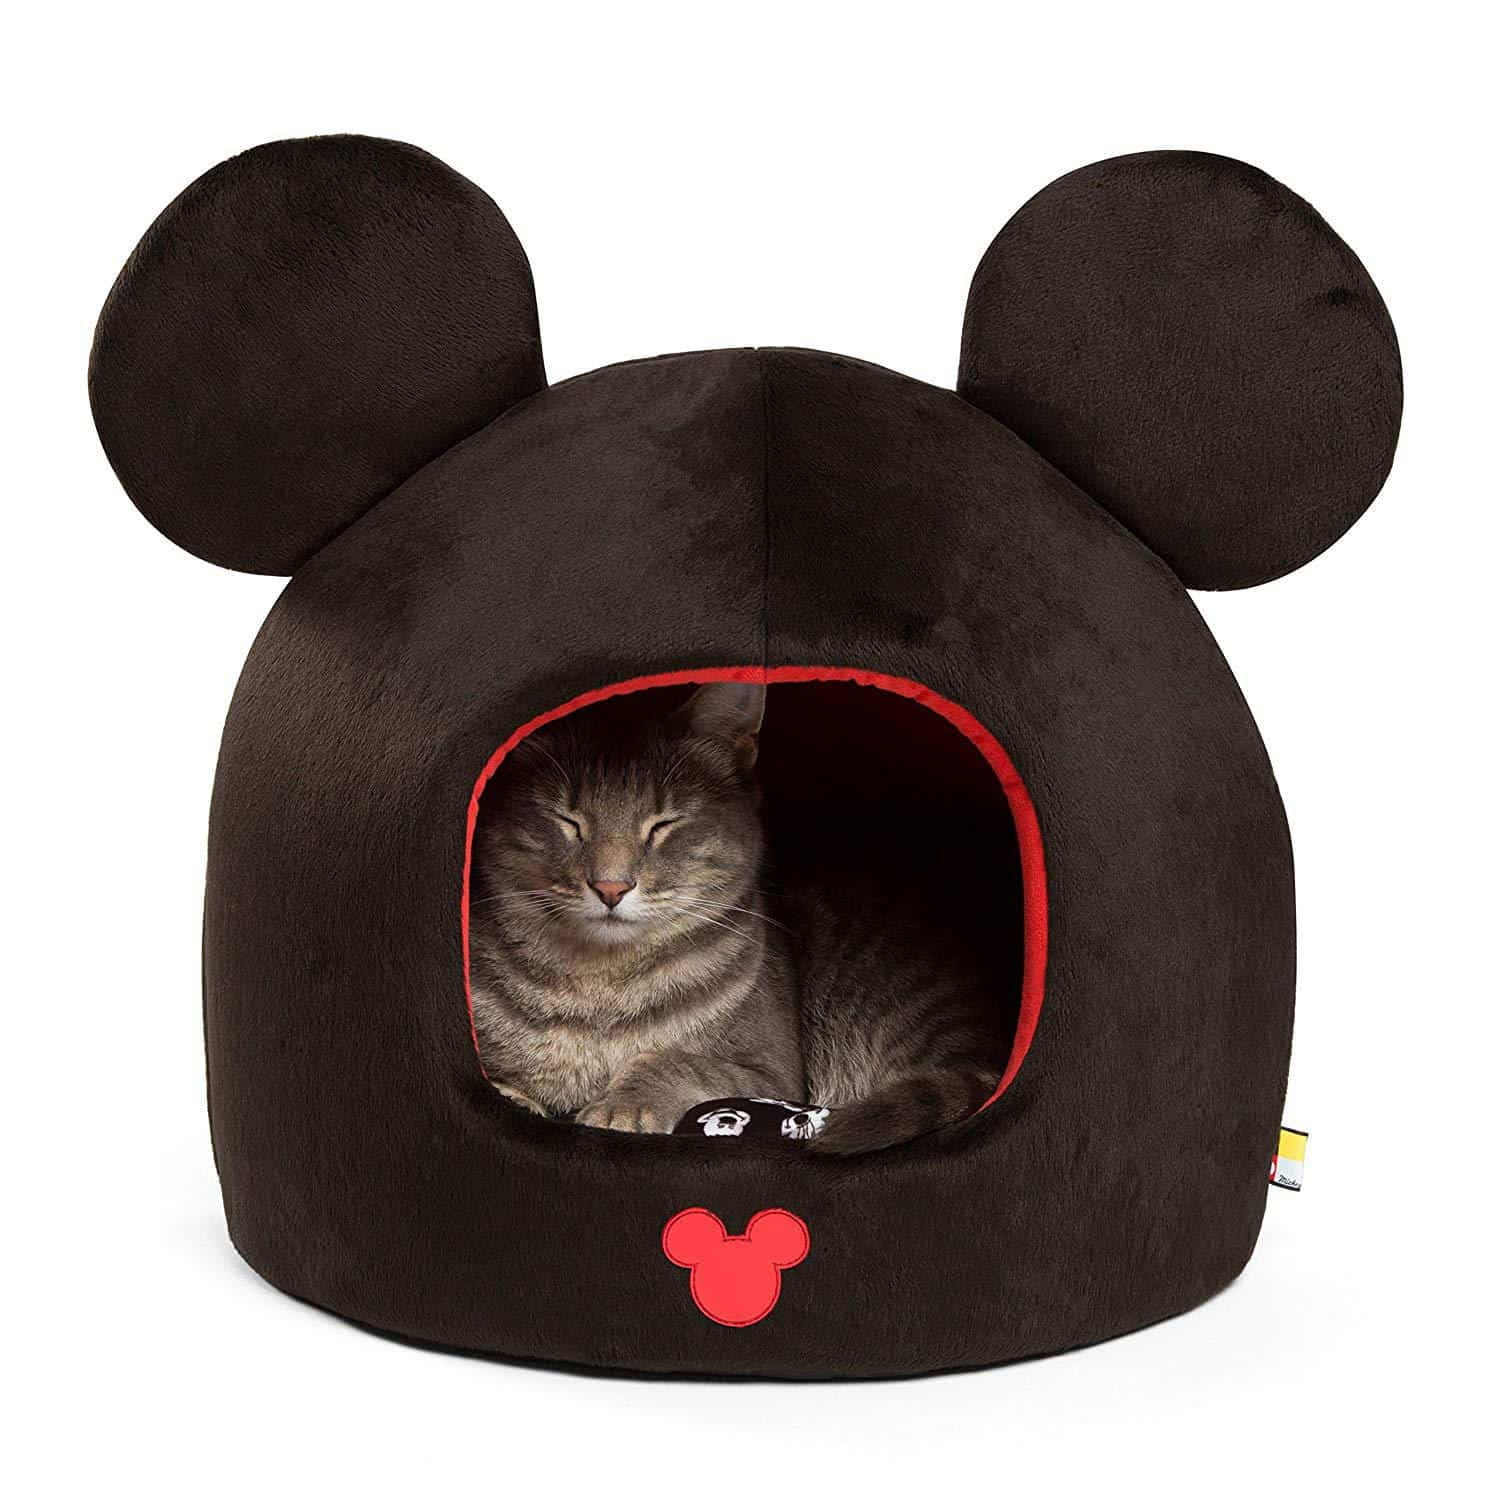 The Purrrfect Disney Cat Gifts 16